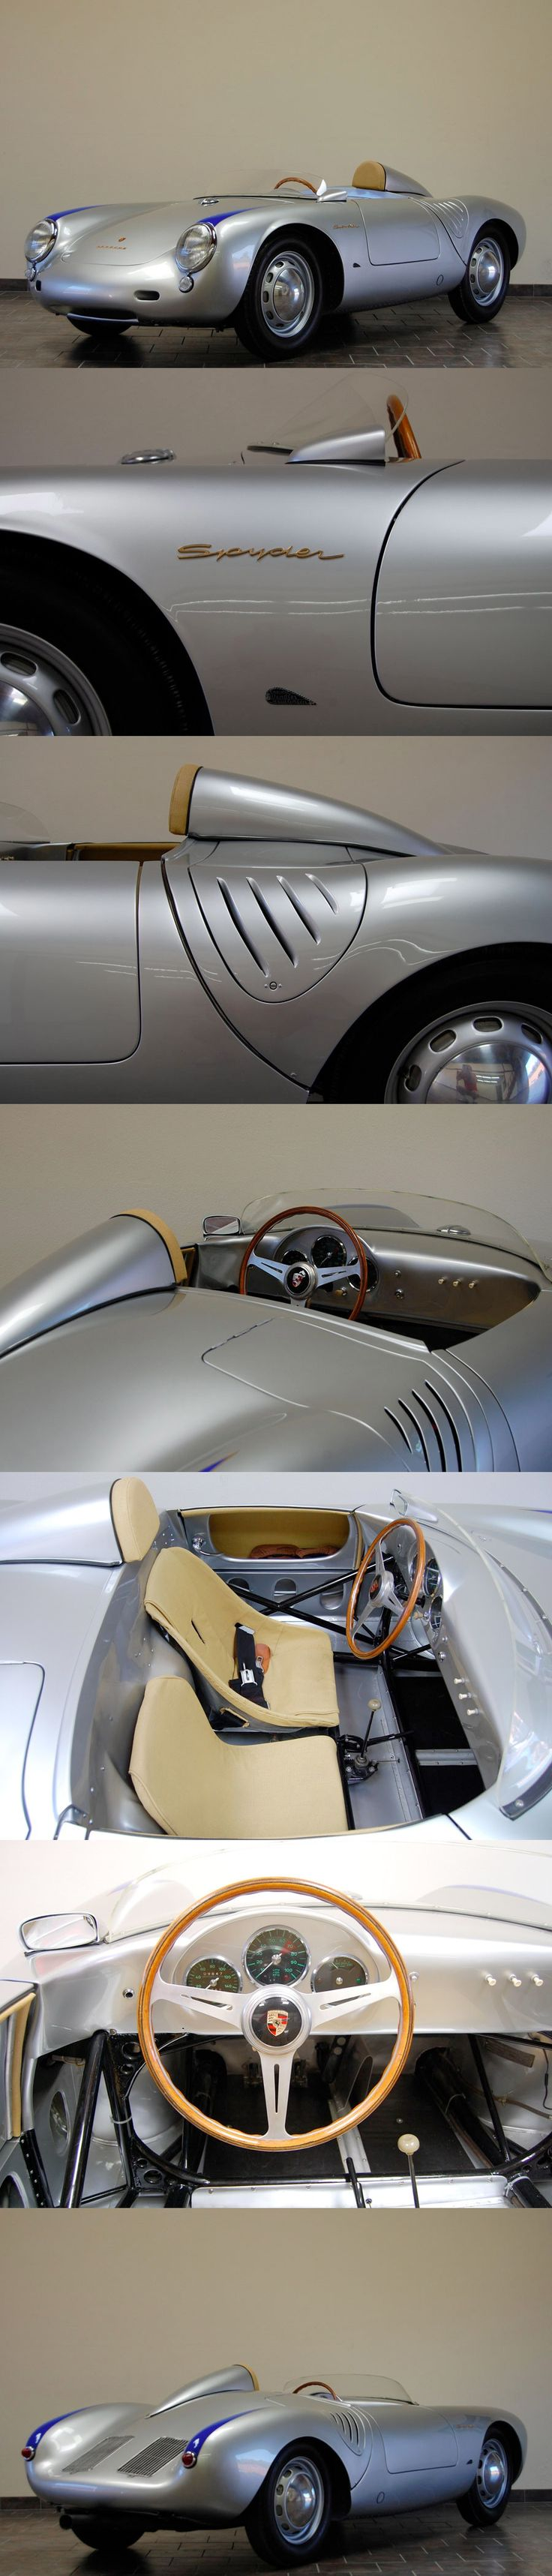 1957 Porsche RS 550A Spyder yes! Sleek like a bullet. Top faves | Whether you're interested in restoring an old classic car or you just need to get your family's reliable transportation looking good after an accident, B & B Collision Corp in Royal Oak, MI is the company for you! Call (248) 543-2929 or visit our website www.bandbcollision.com for more information!